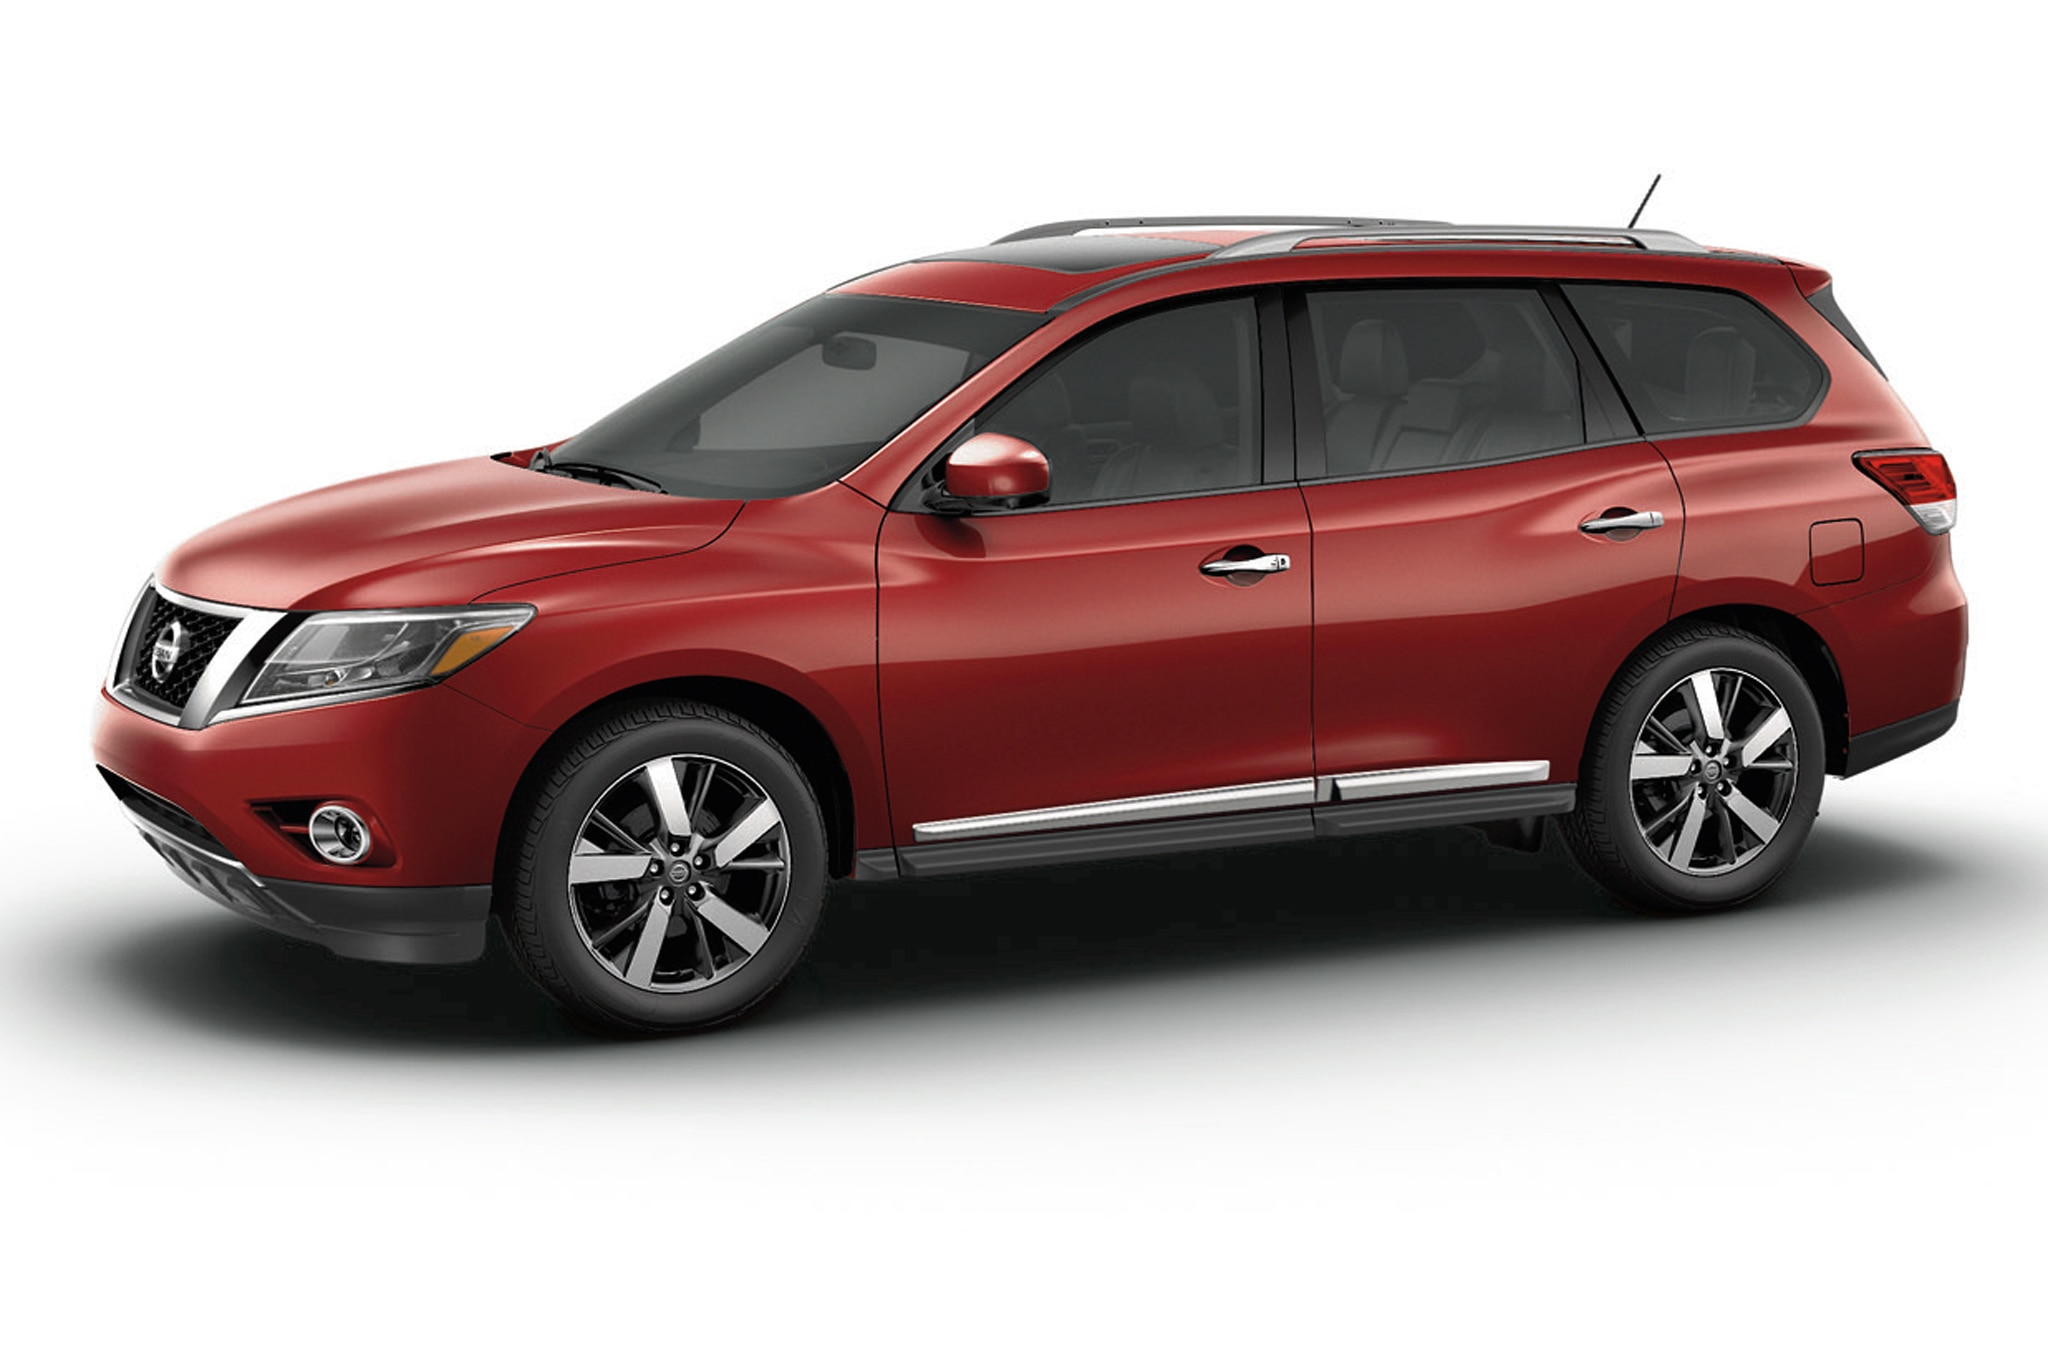 2015 nissan pathfinder pricing rises slightly to 30 395. Black Bedroom Furniture Sets. Home Design Ideas